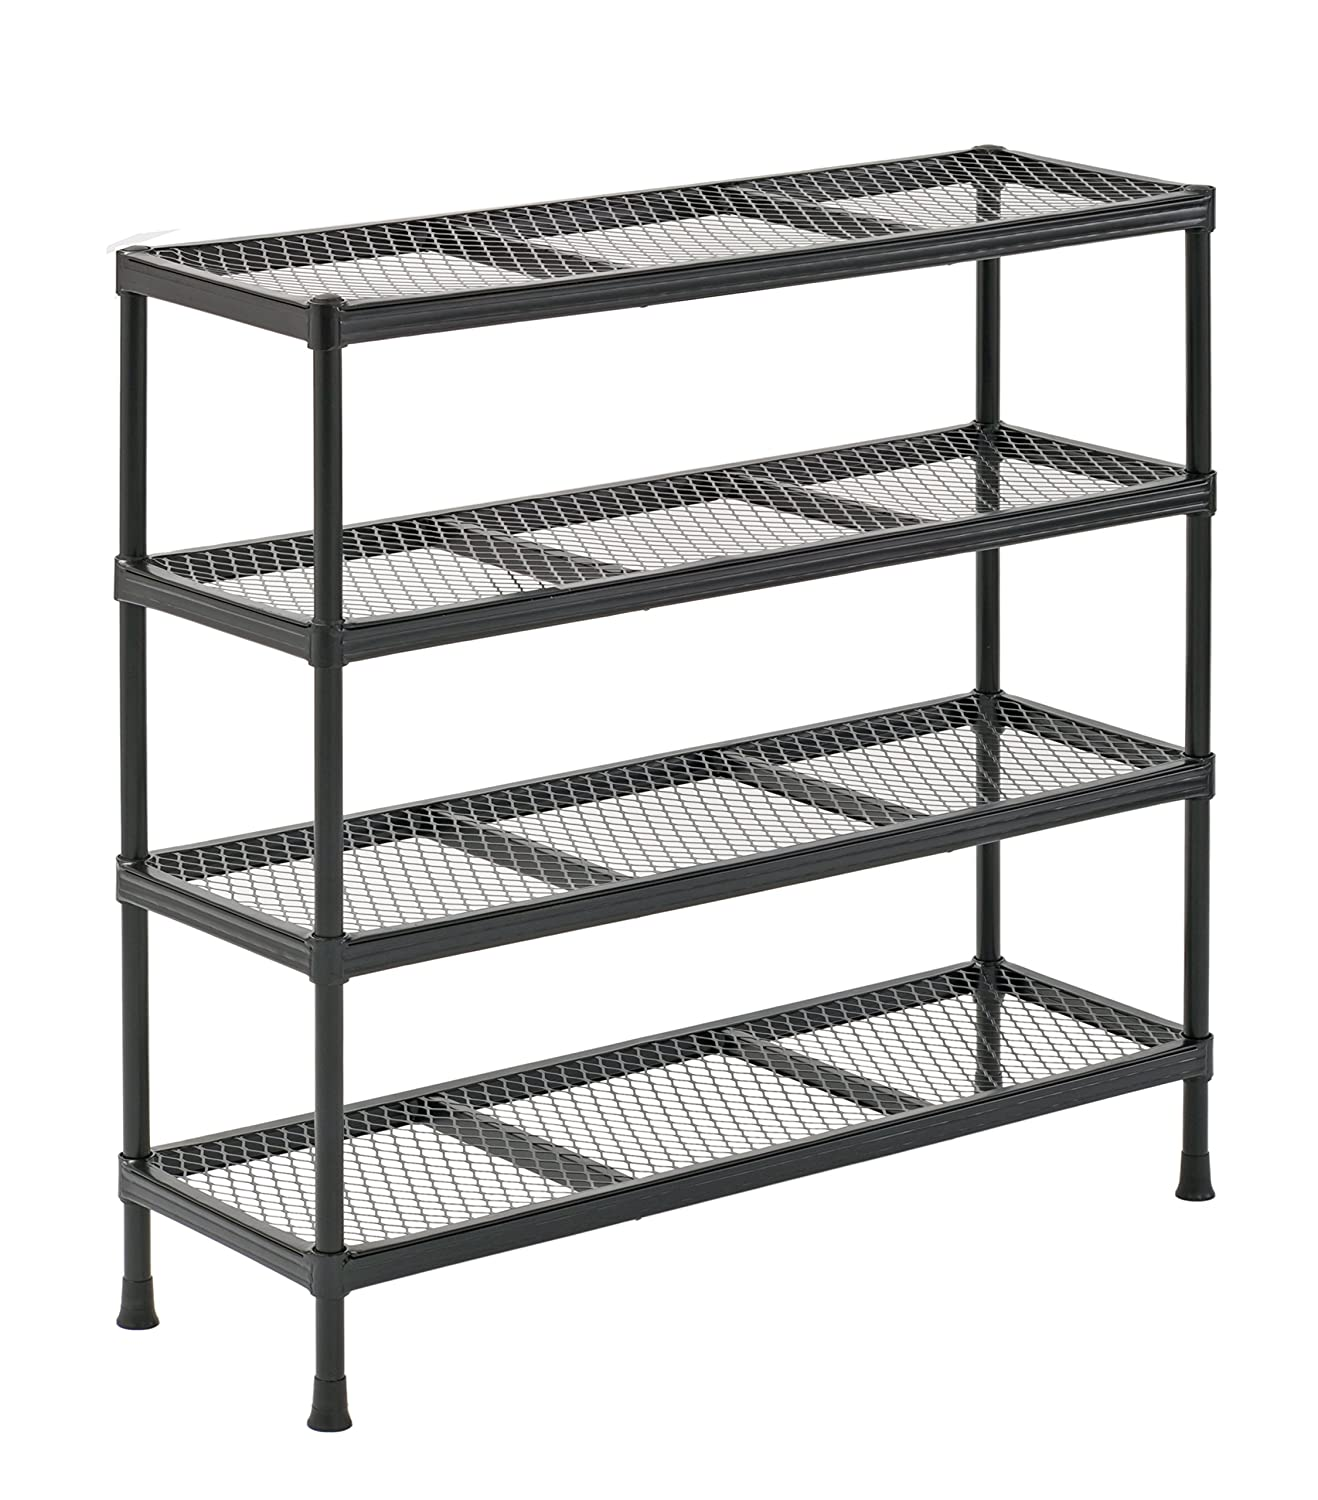 "Sandusky CSR311031 Gray Combination Wire Shelving Unit, 4 Shelves, 31"" Height x 31"" Width x 11"" Depth"